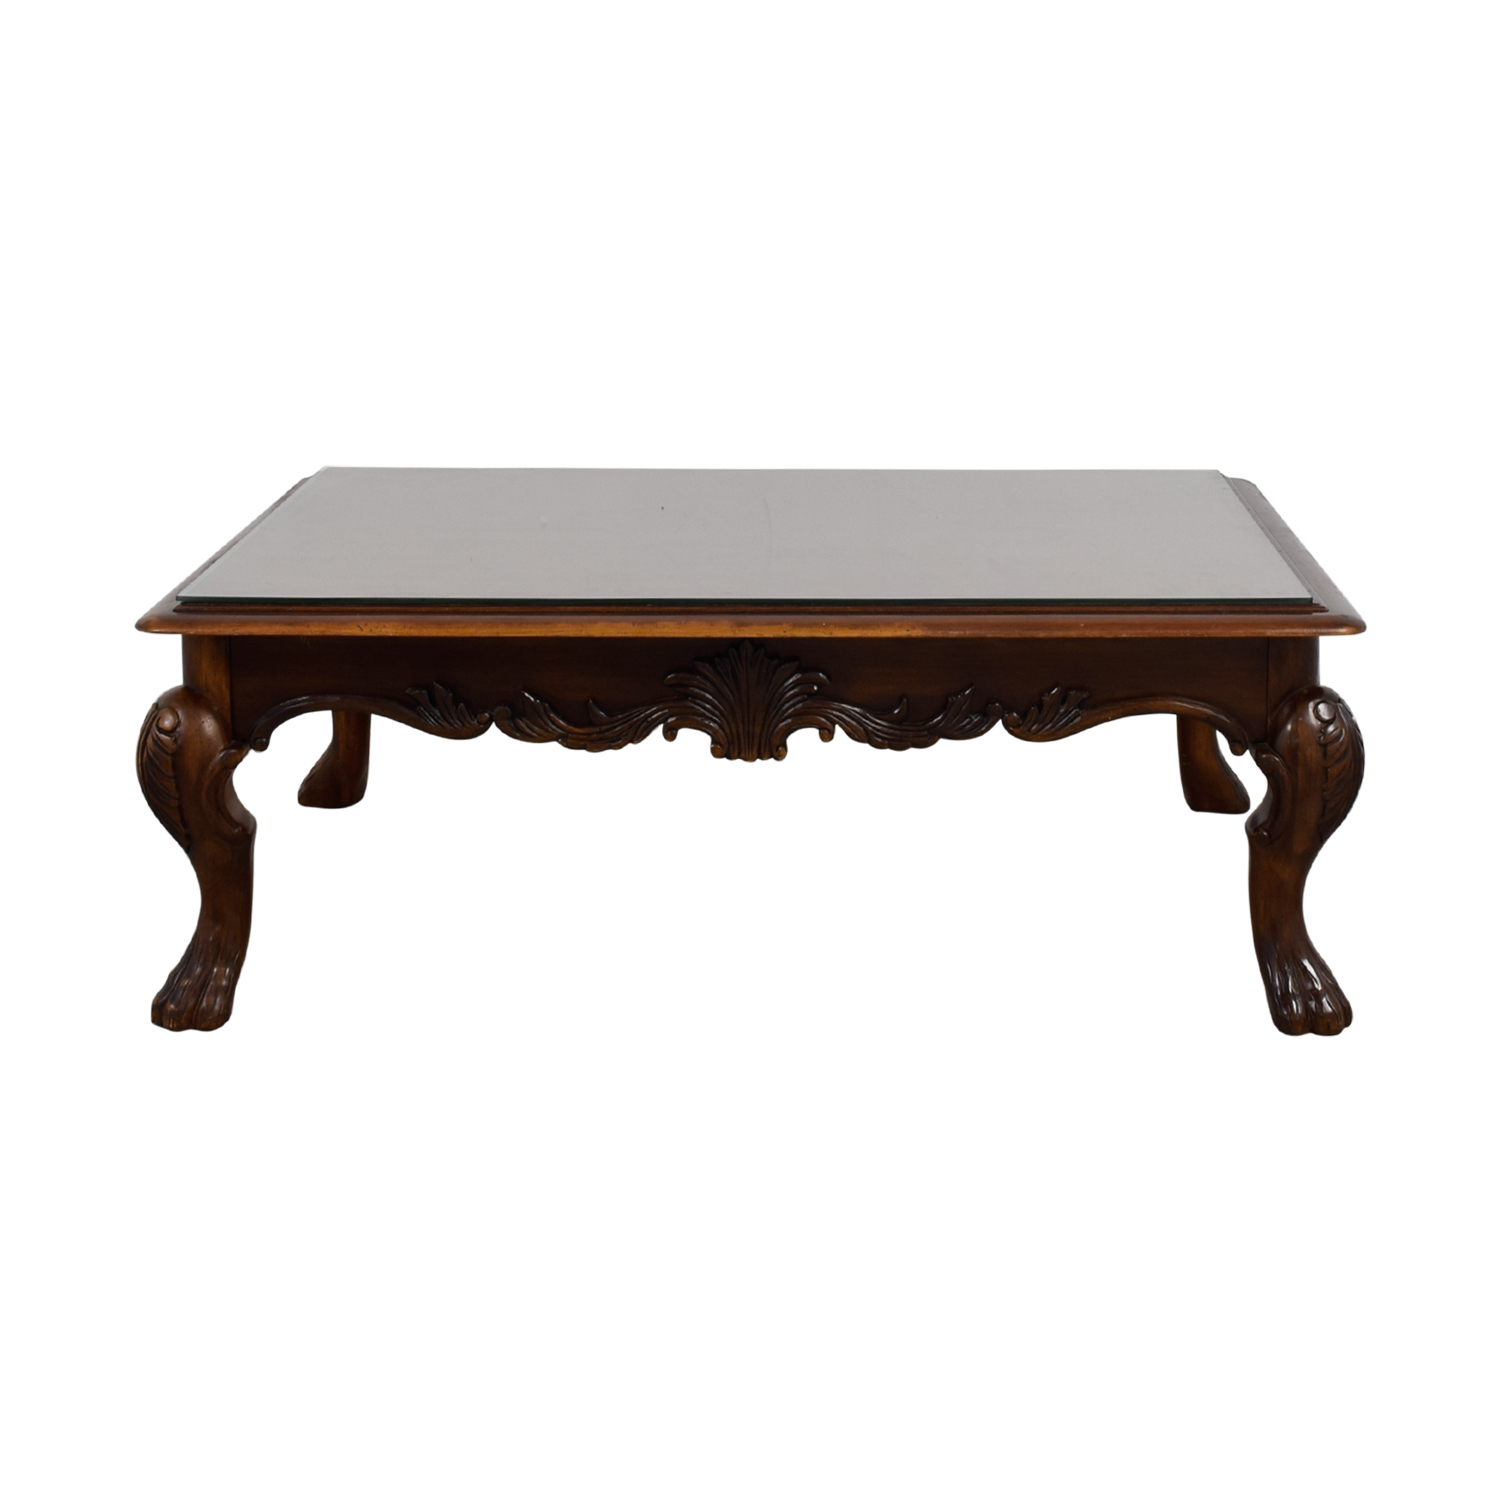 75 Off Rectangular Carved Wood Coffee Table With Glass Top Tables